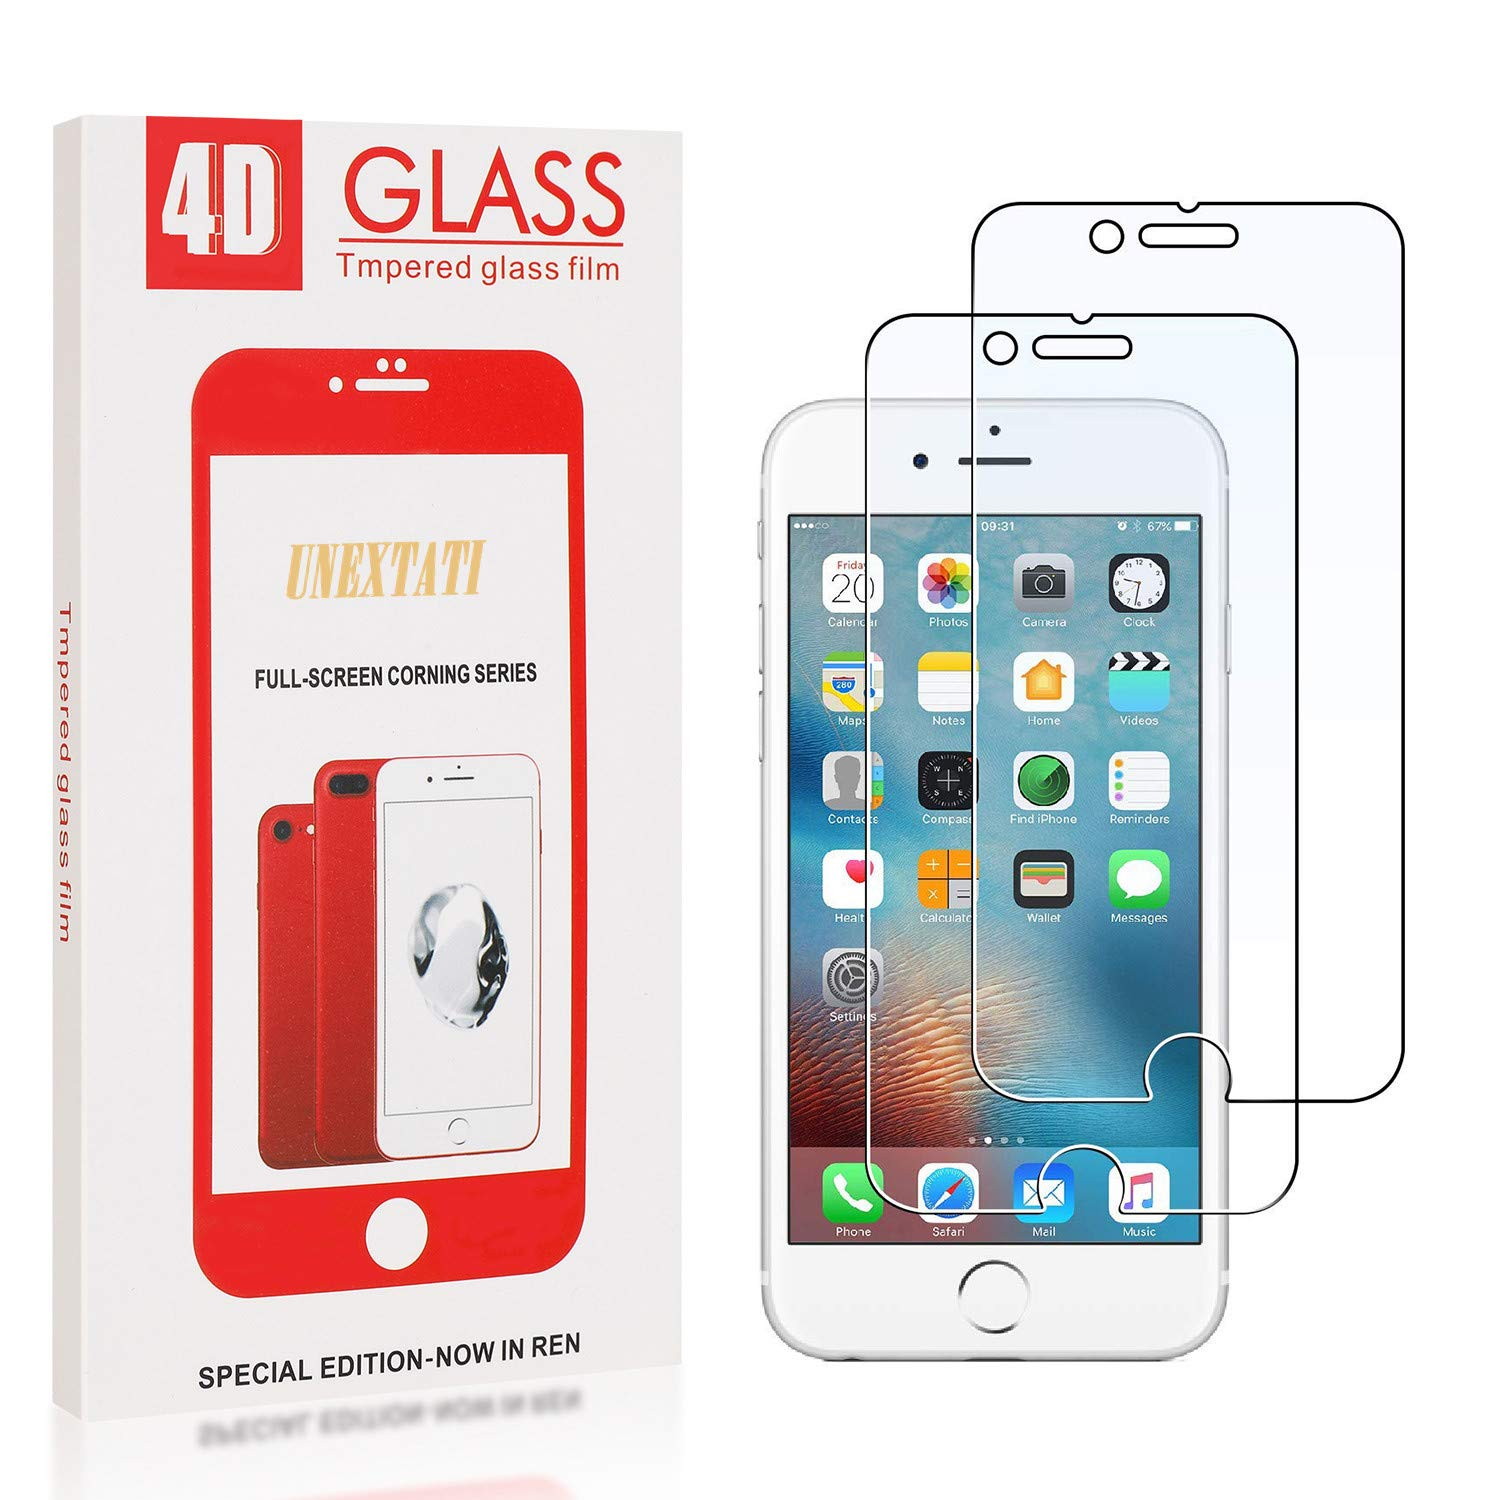 UNEXTATI 2 Pack Screen Protector for iPhone 11 Pro Tempered Glass Film 9h HD 9H Tempered Glass Screen Protector Anti Shatter Film for iPhone 11 Pro